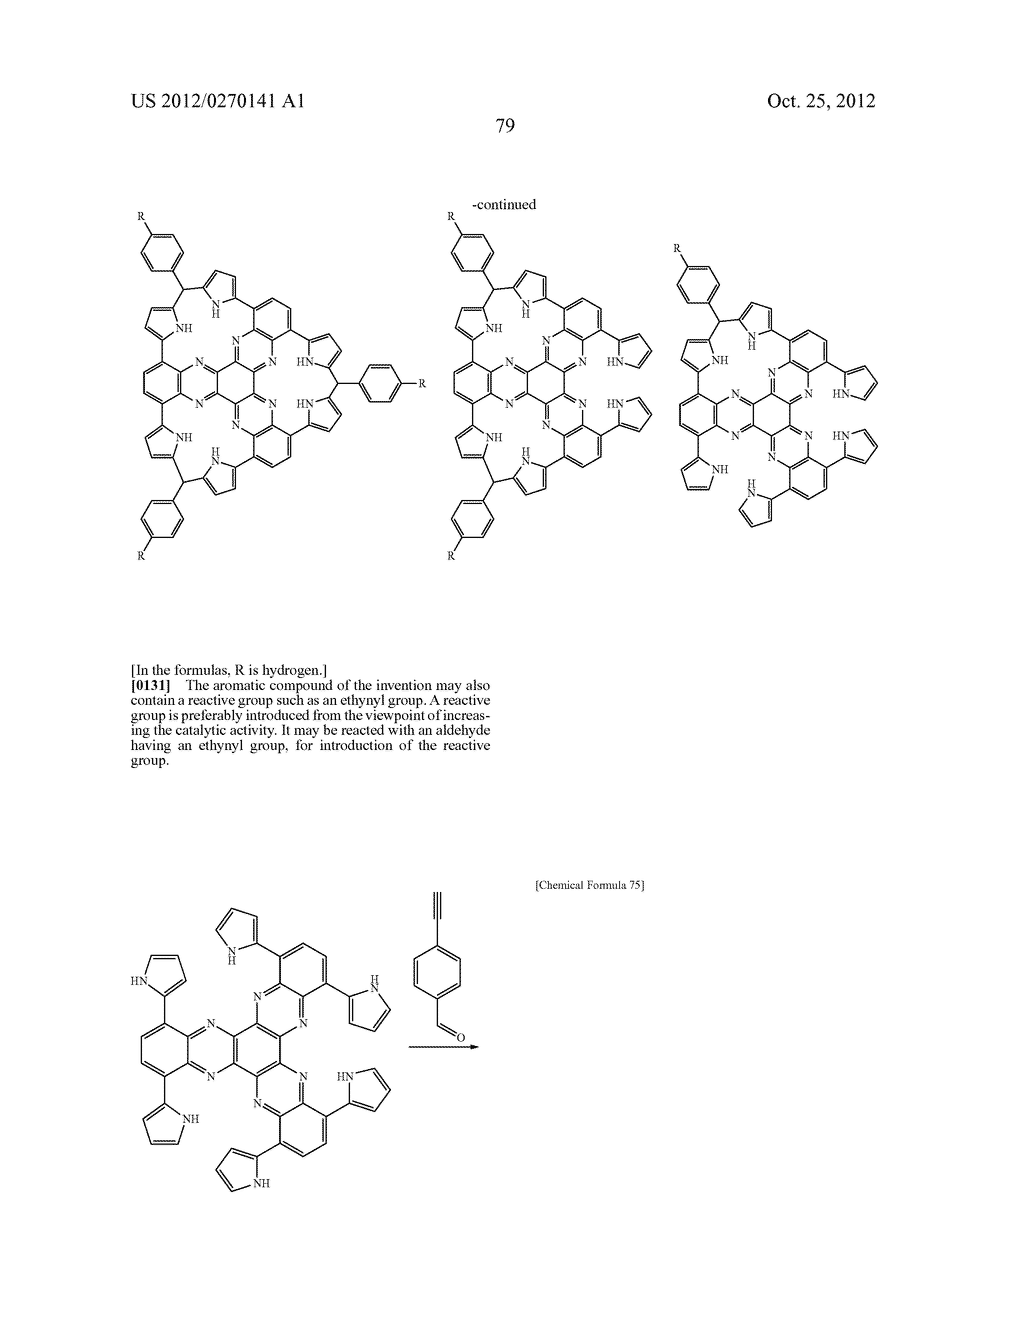 NITROGEN-CONTAINING AROMATIC COMPOUNDS AND METAL COMPLEXES - diagram, schematic, and image 80